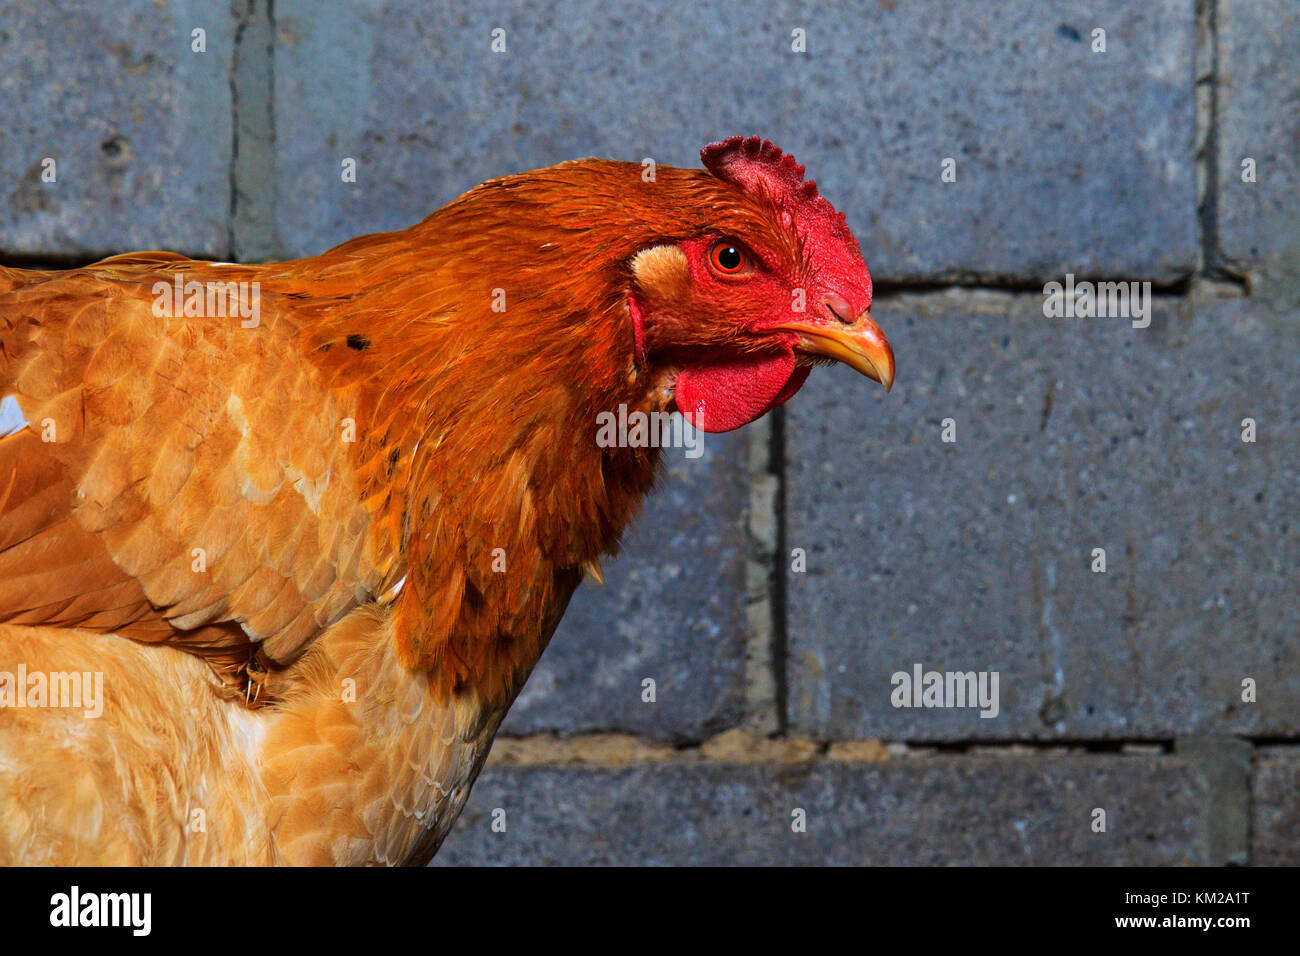 red chicken portrait on the background of a brick wall - Stock Image